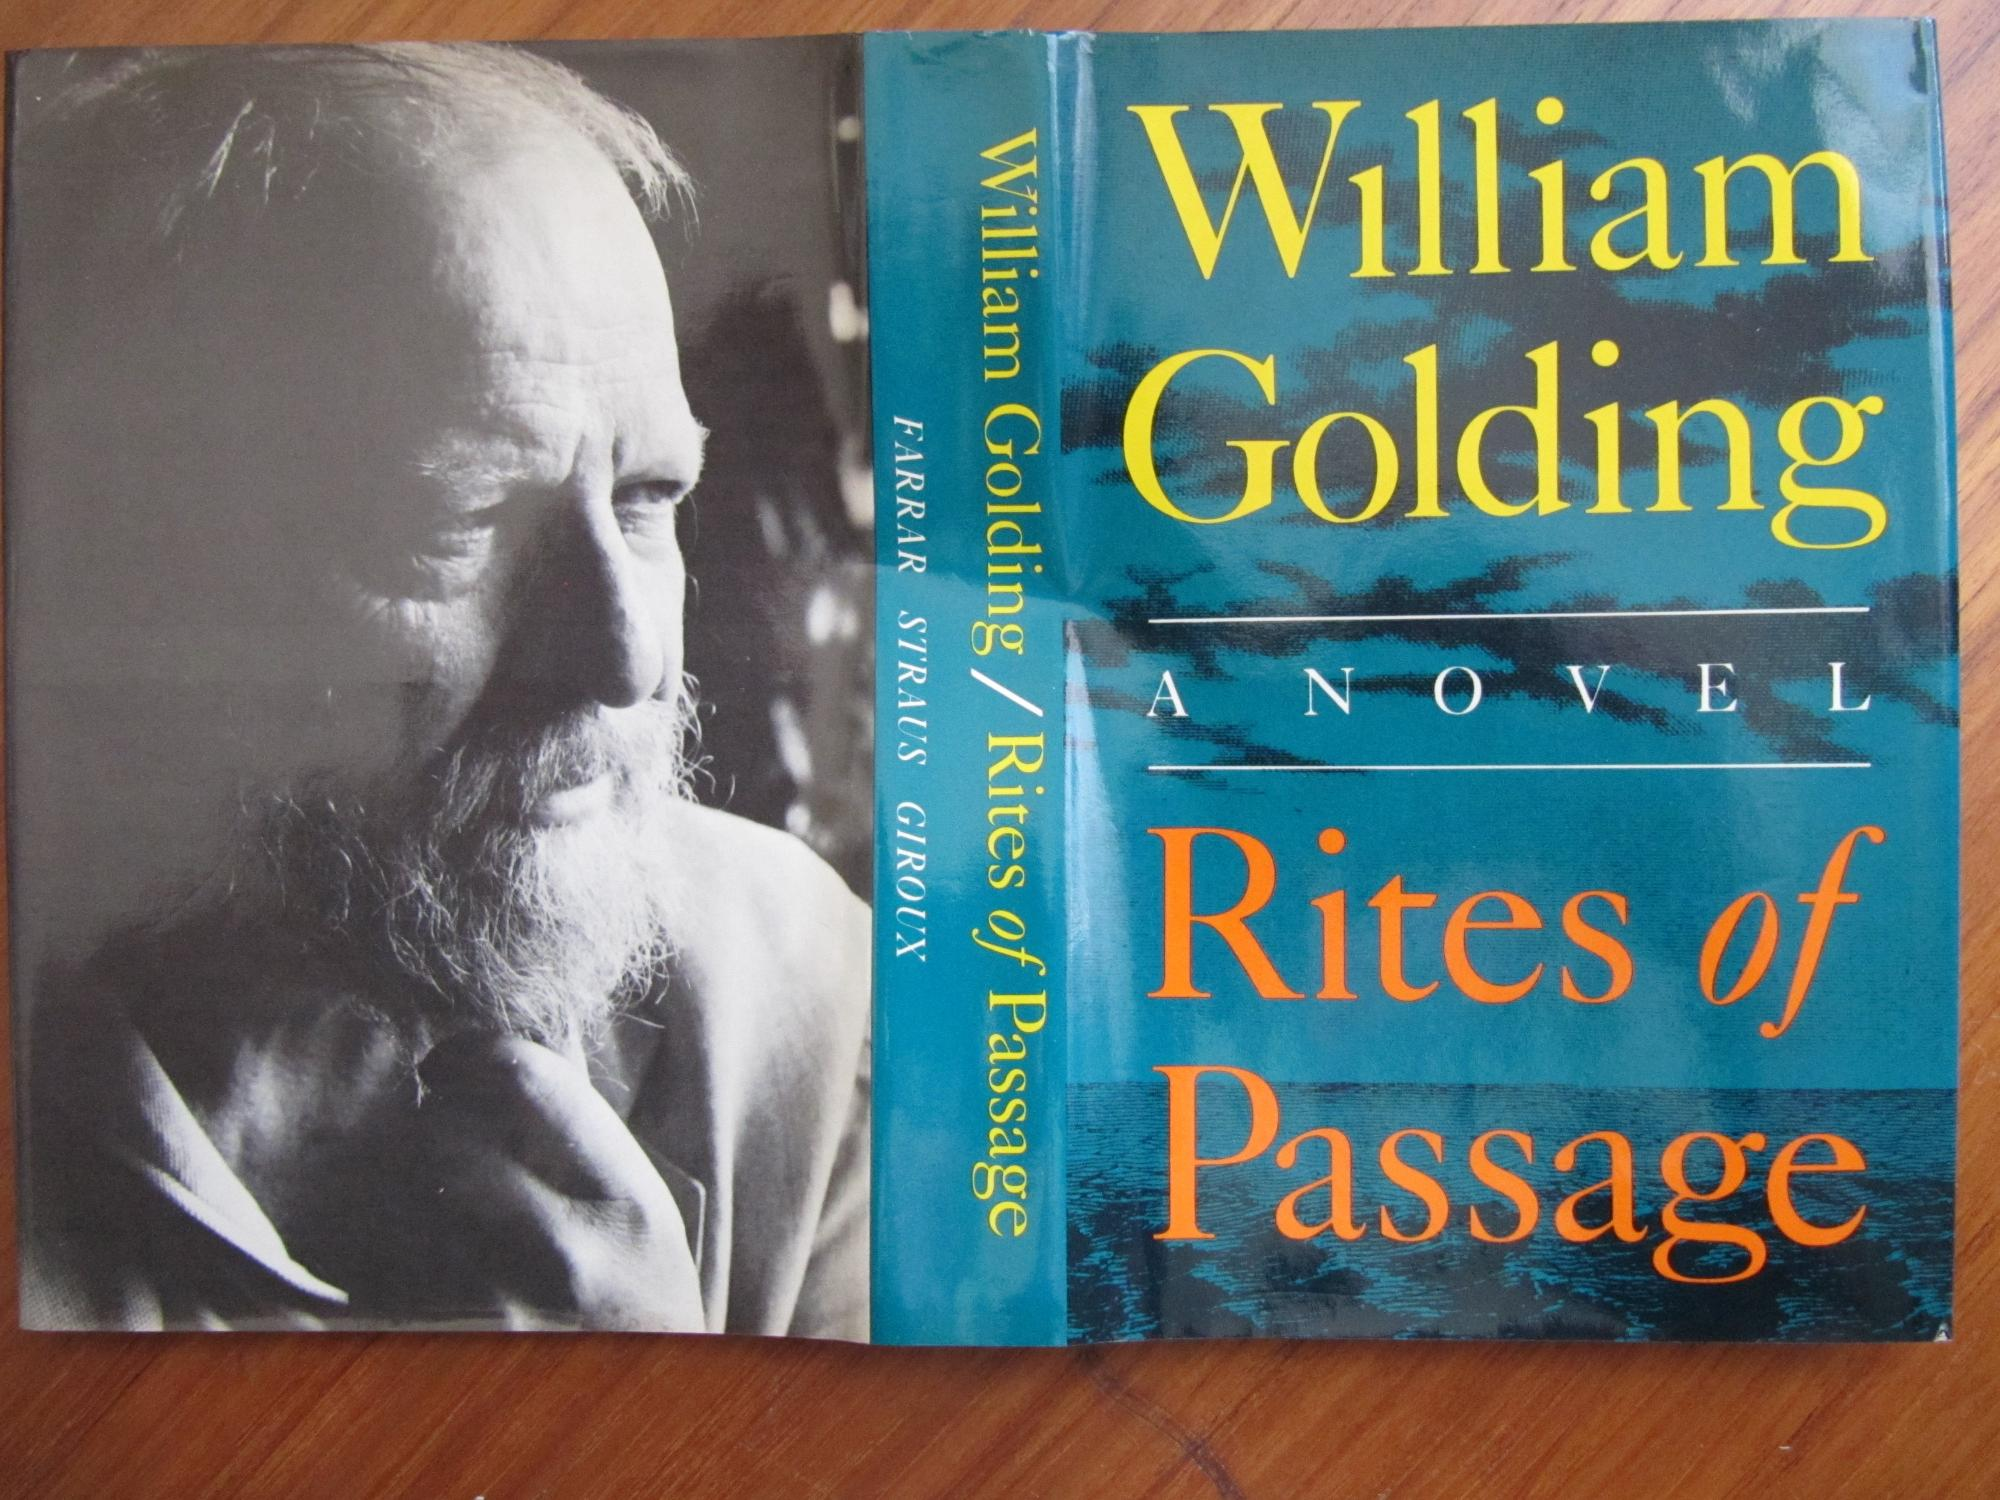 rites of passage william golding pdf